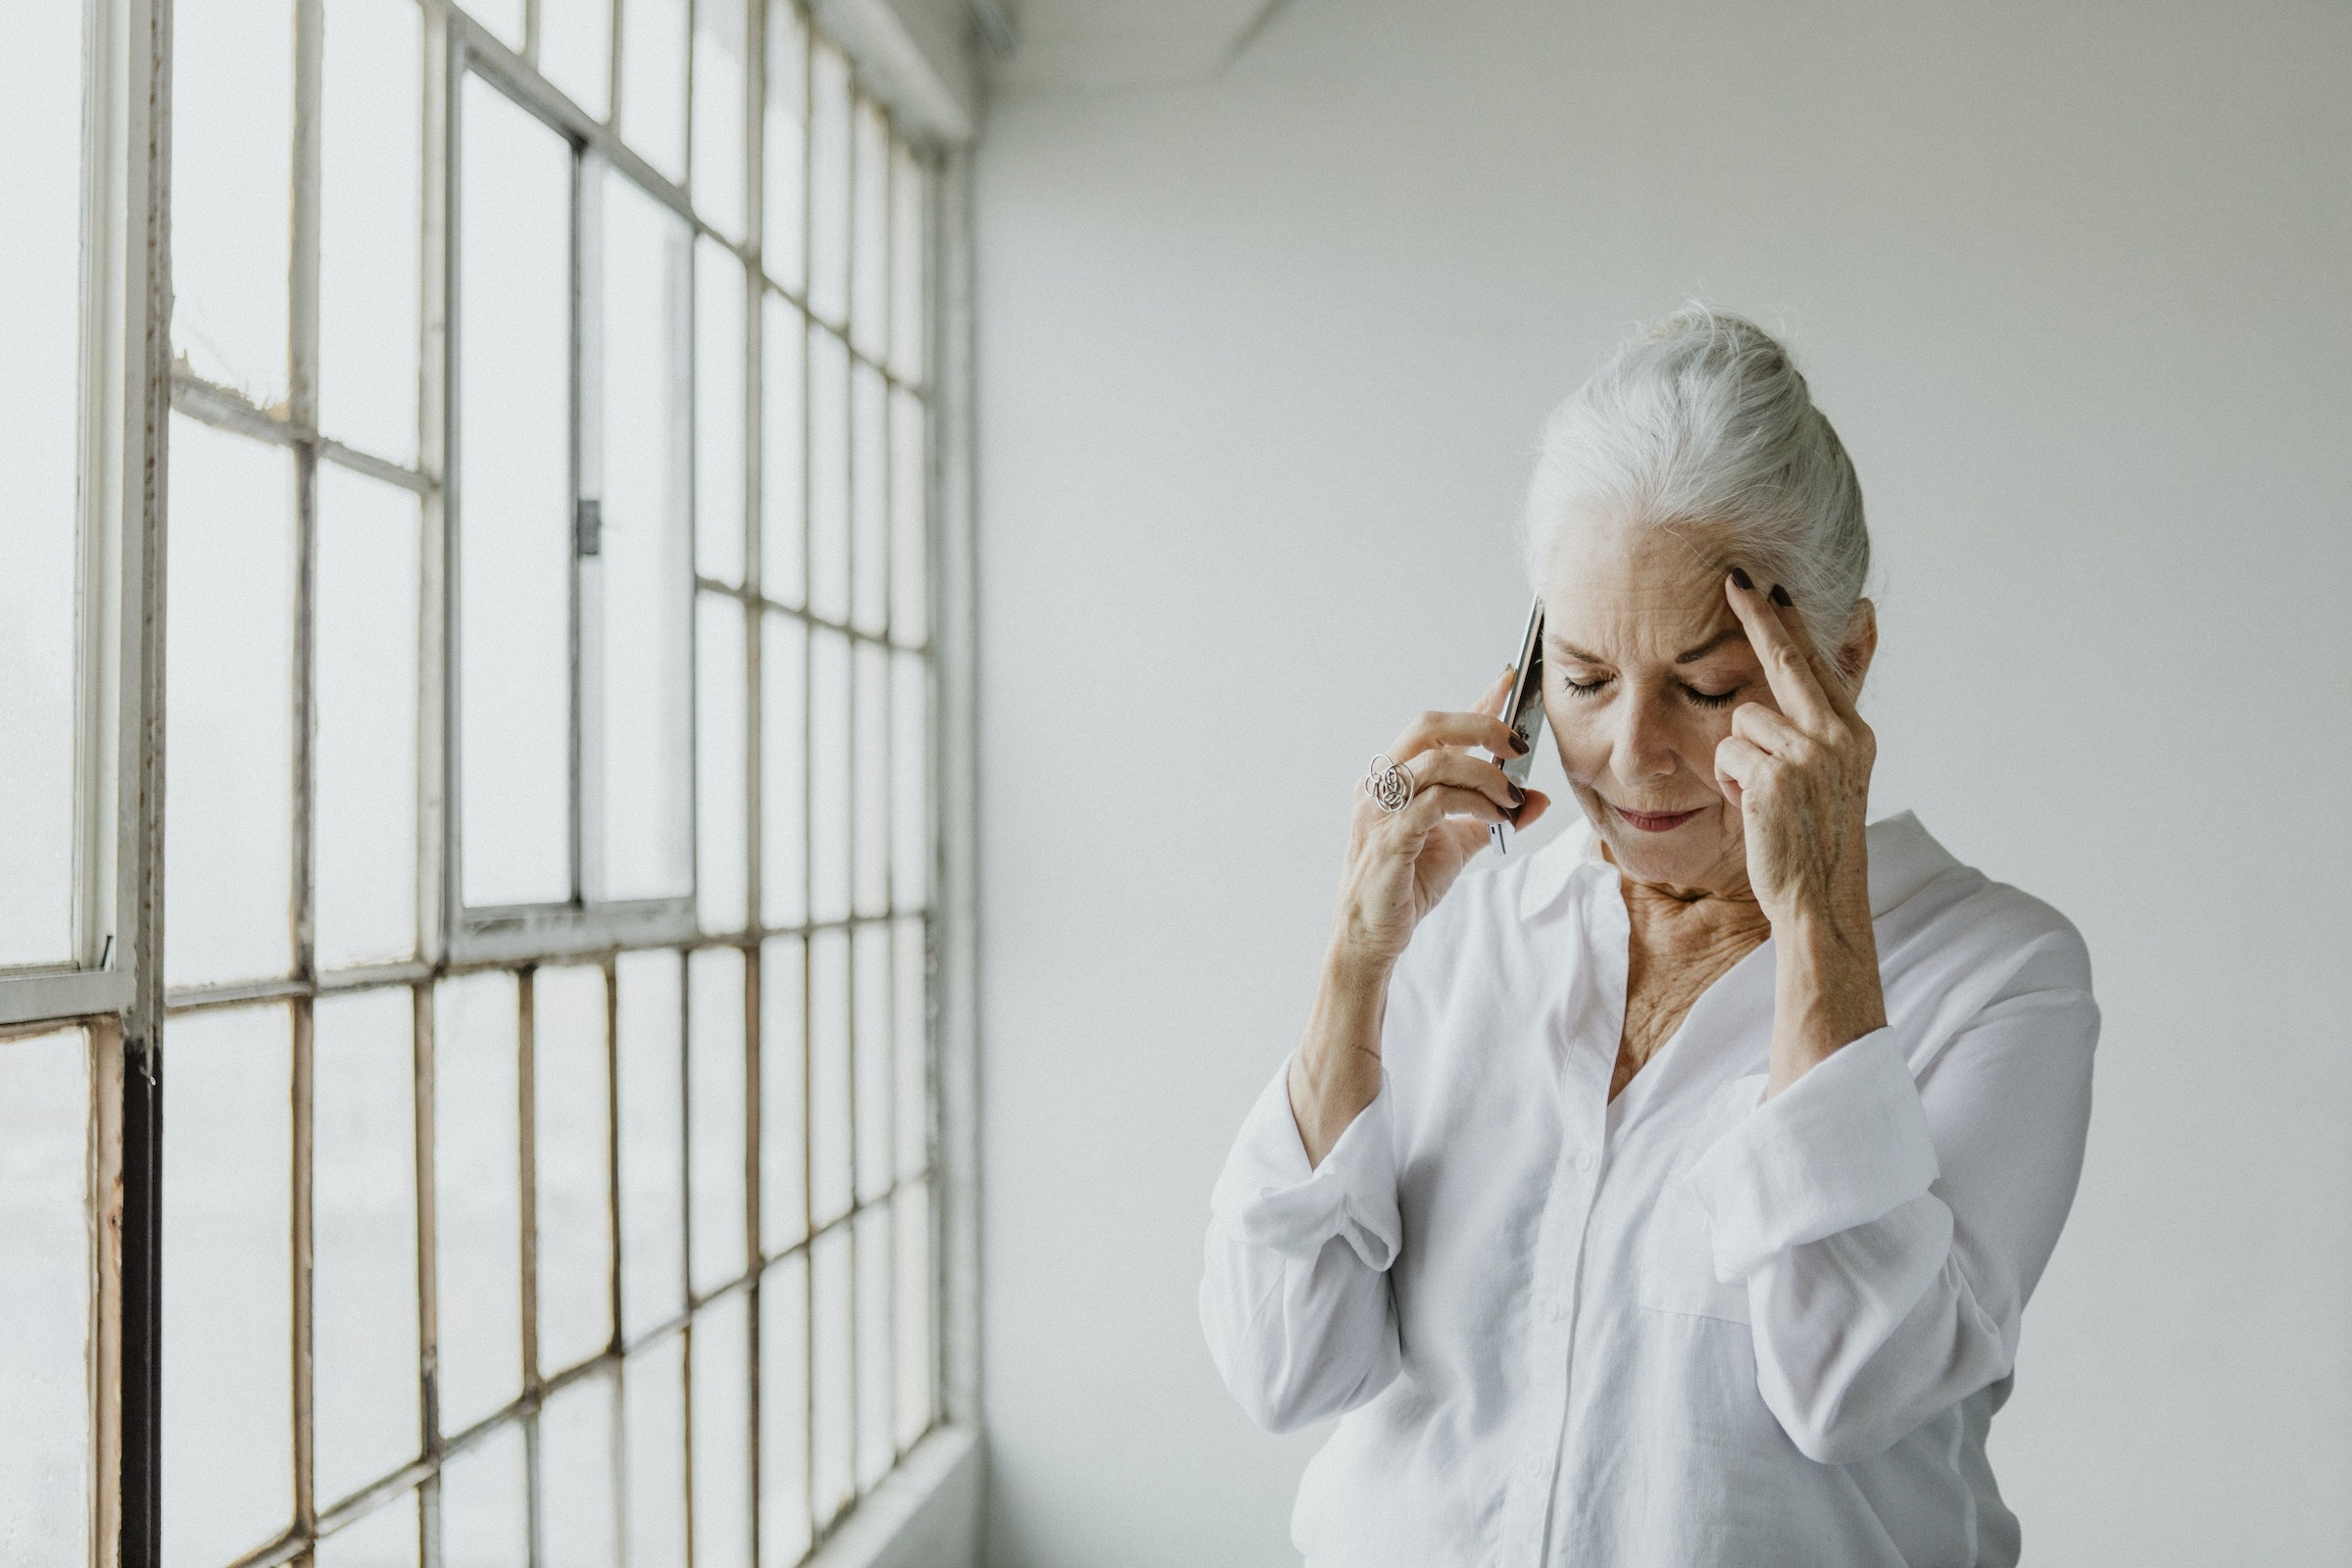 frowning woman with white hair places fingers on her forehead in frustration while holding a cell phone to her ear